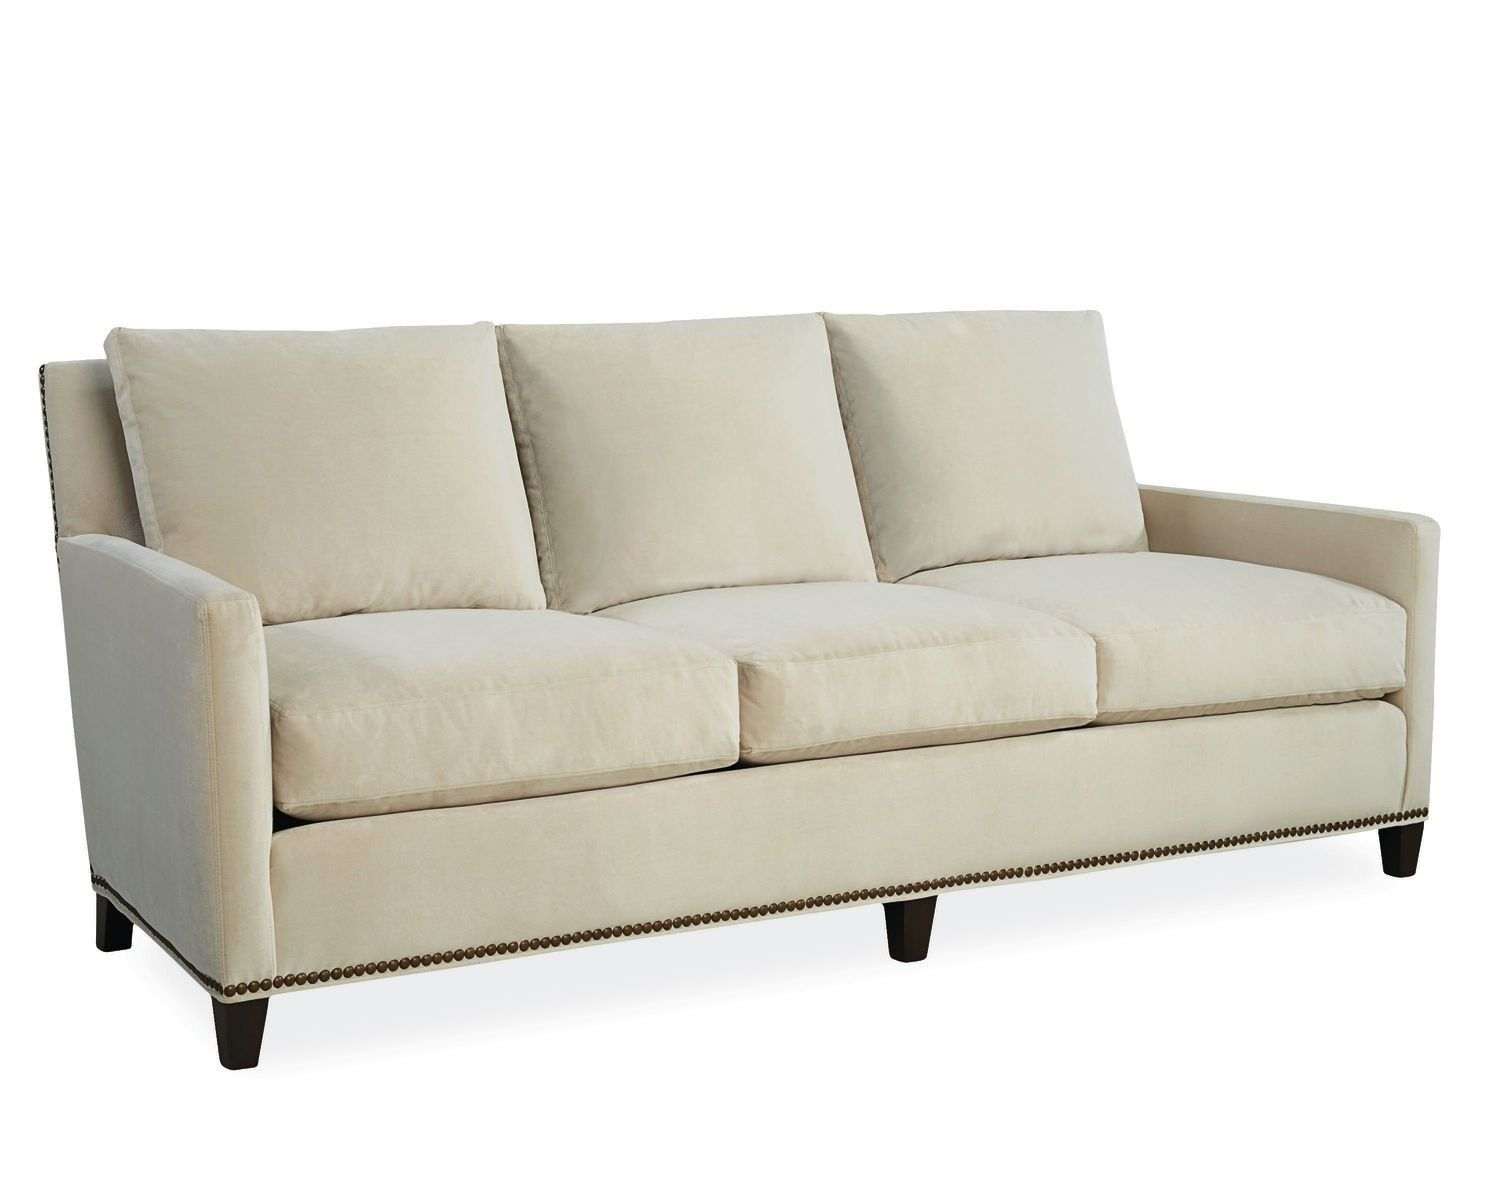 St. Paul Sofa | Lee industries, Upholstery and Living room ideas